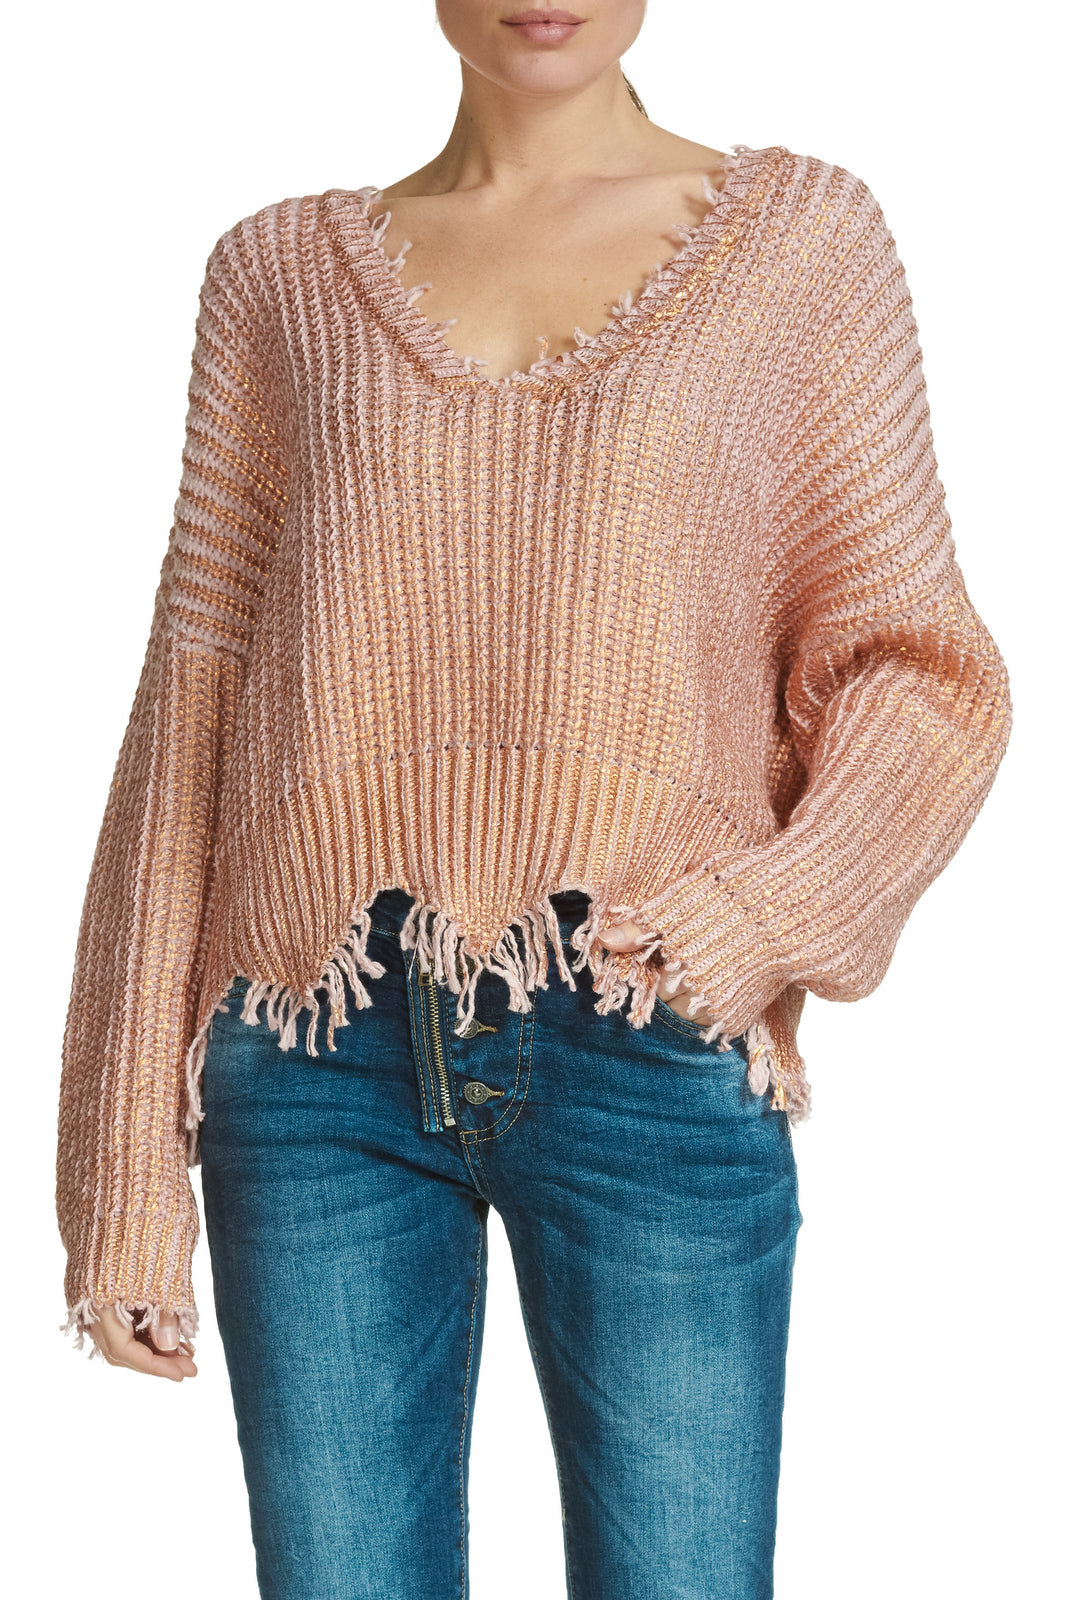 V-NECK METALLIC SWEATER WITH DISTRESSED DETAIL